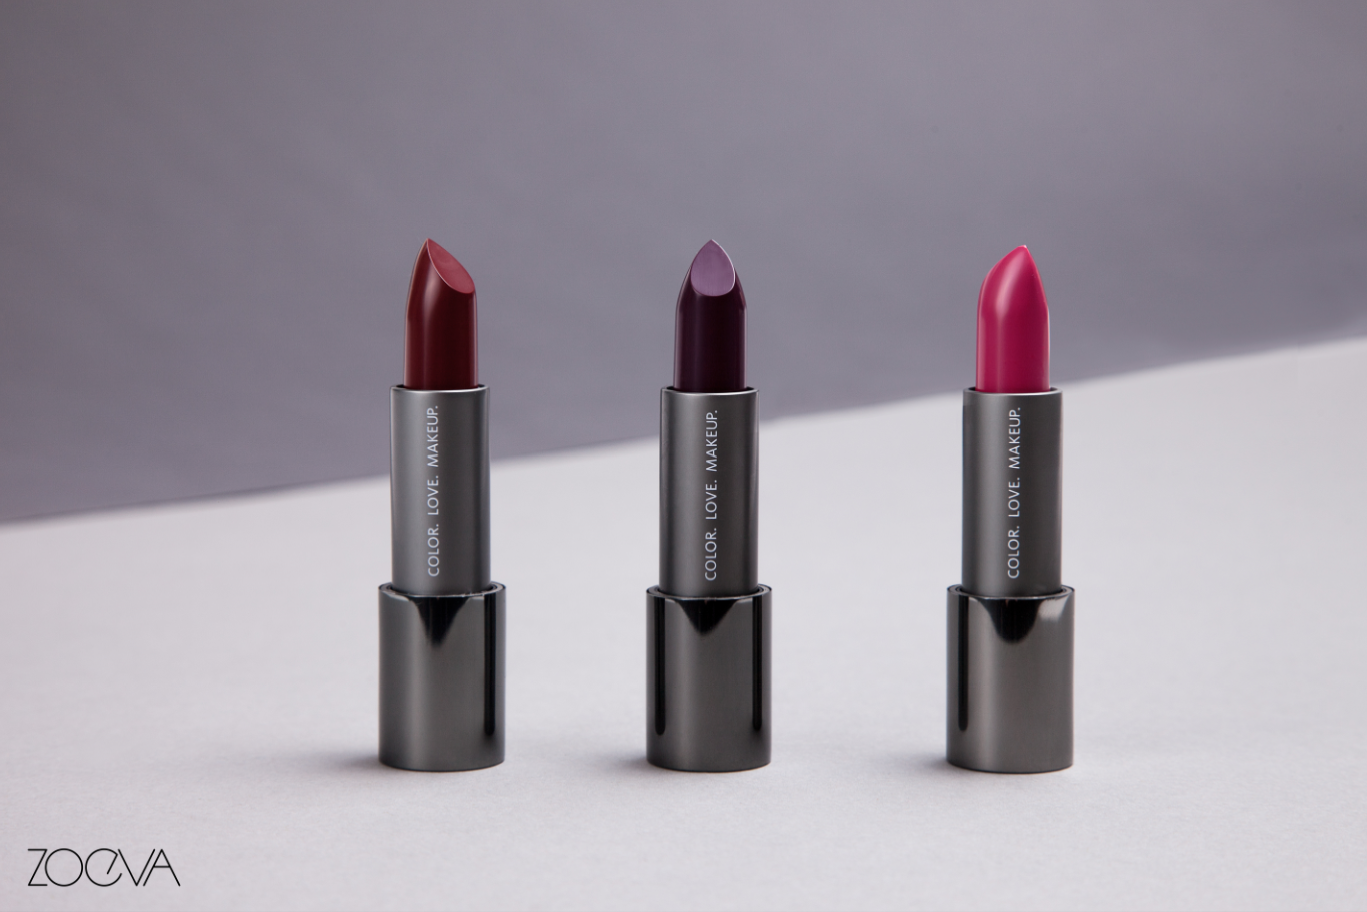 zoeva-luxe-cream-lipsticks